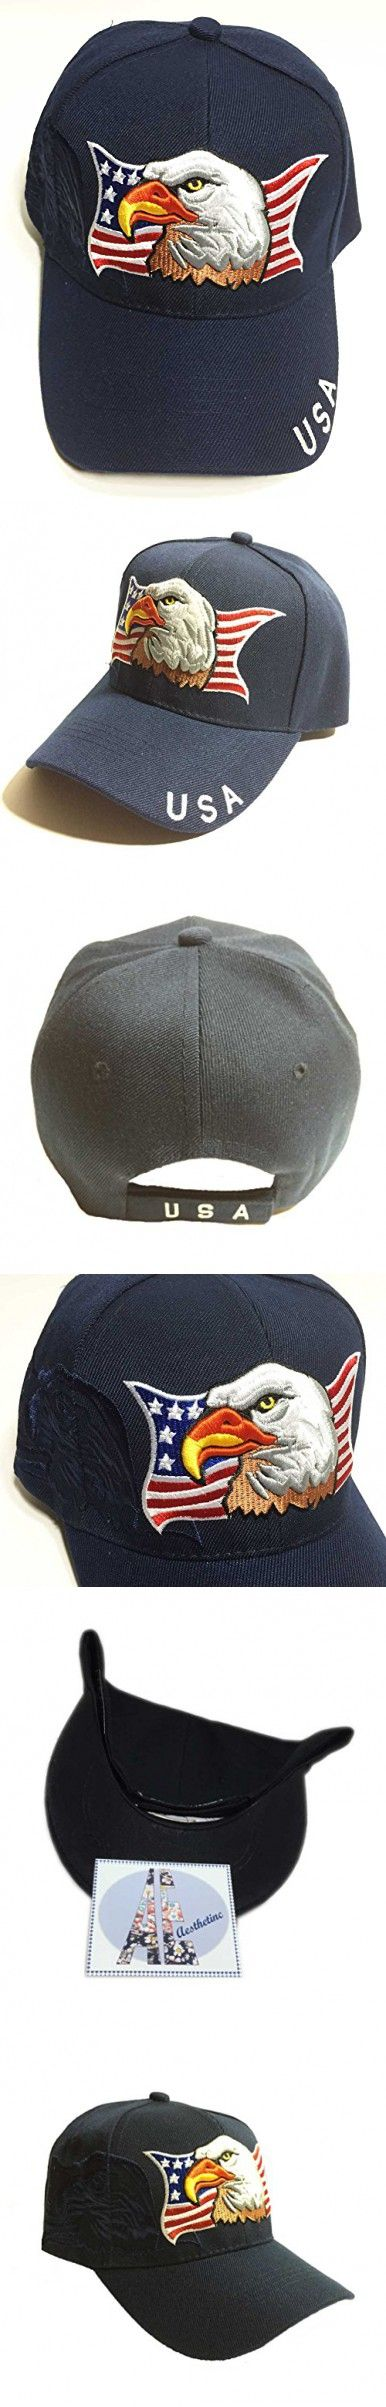 Patriotic American Eagle and Flag Baseball Cap with USA (Navy Blue)